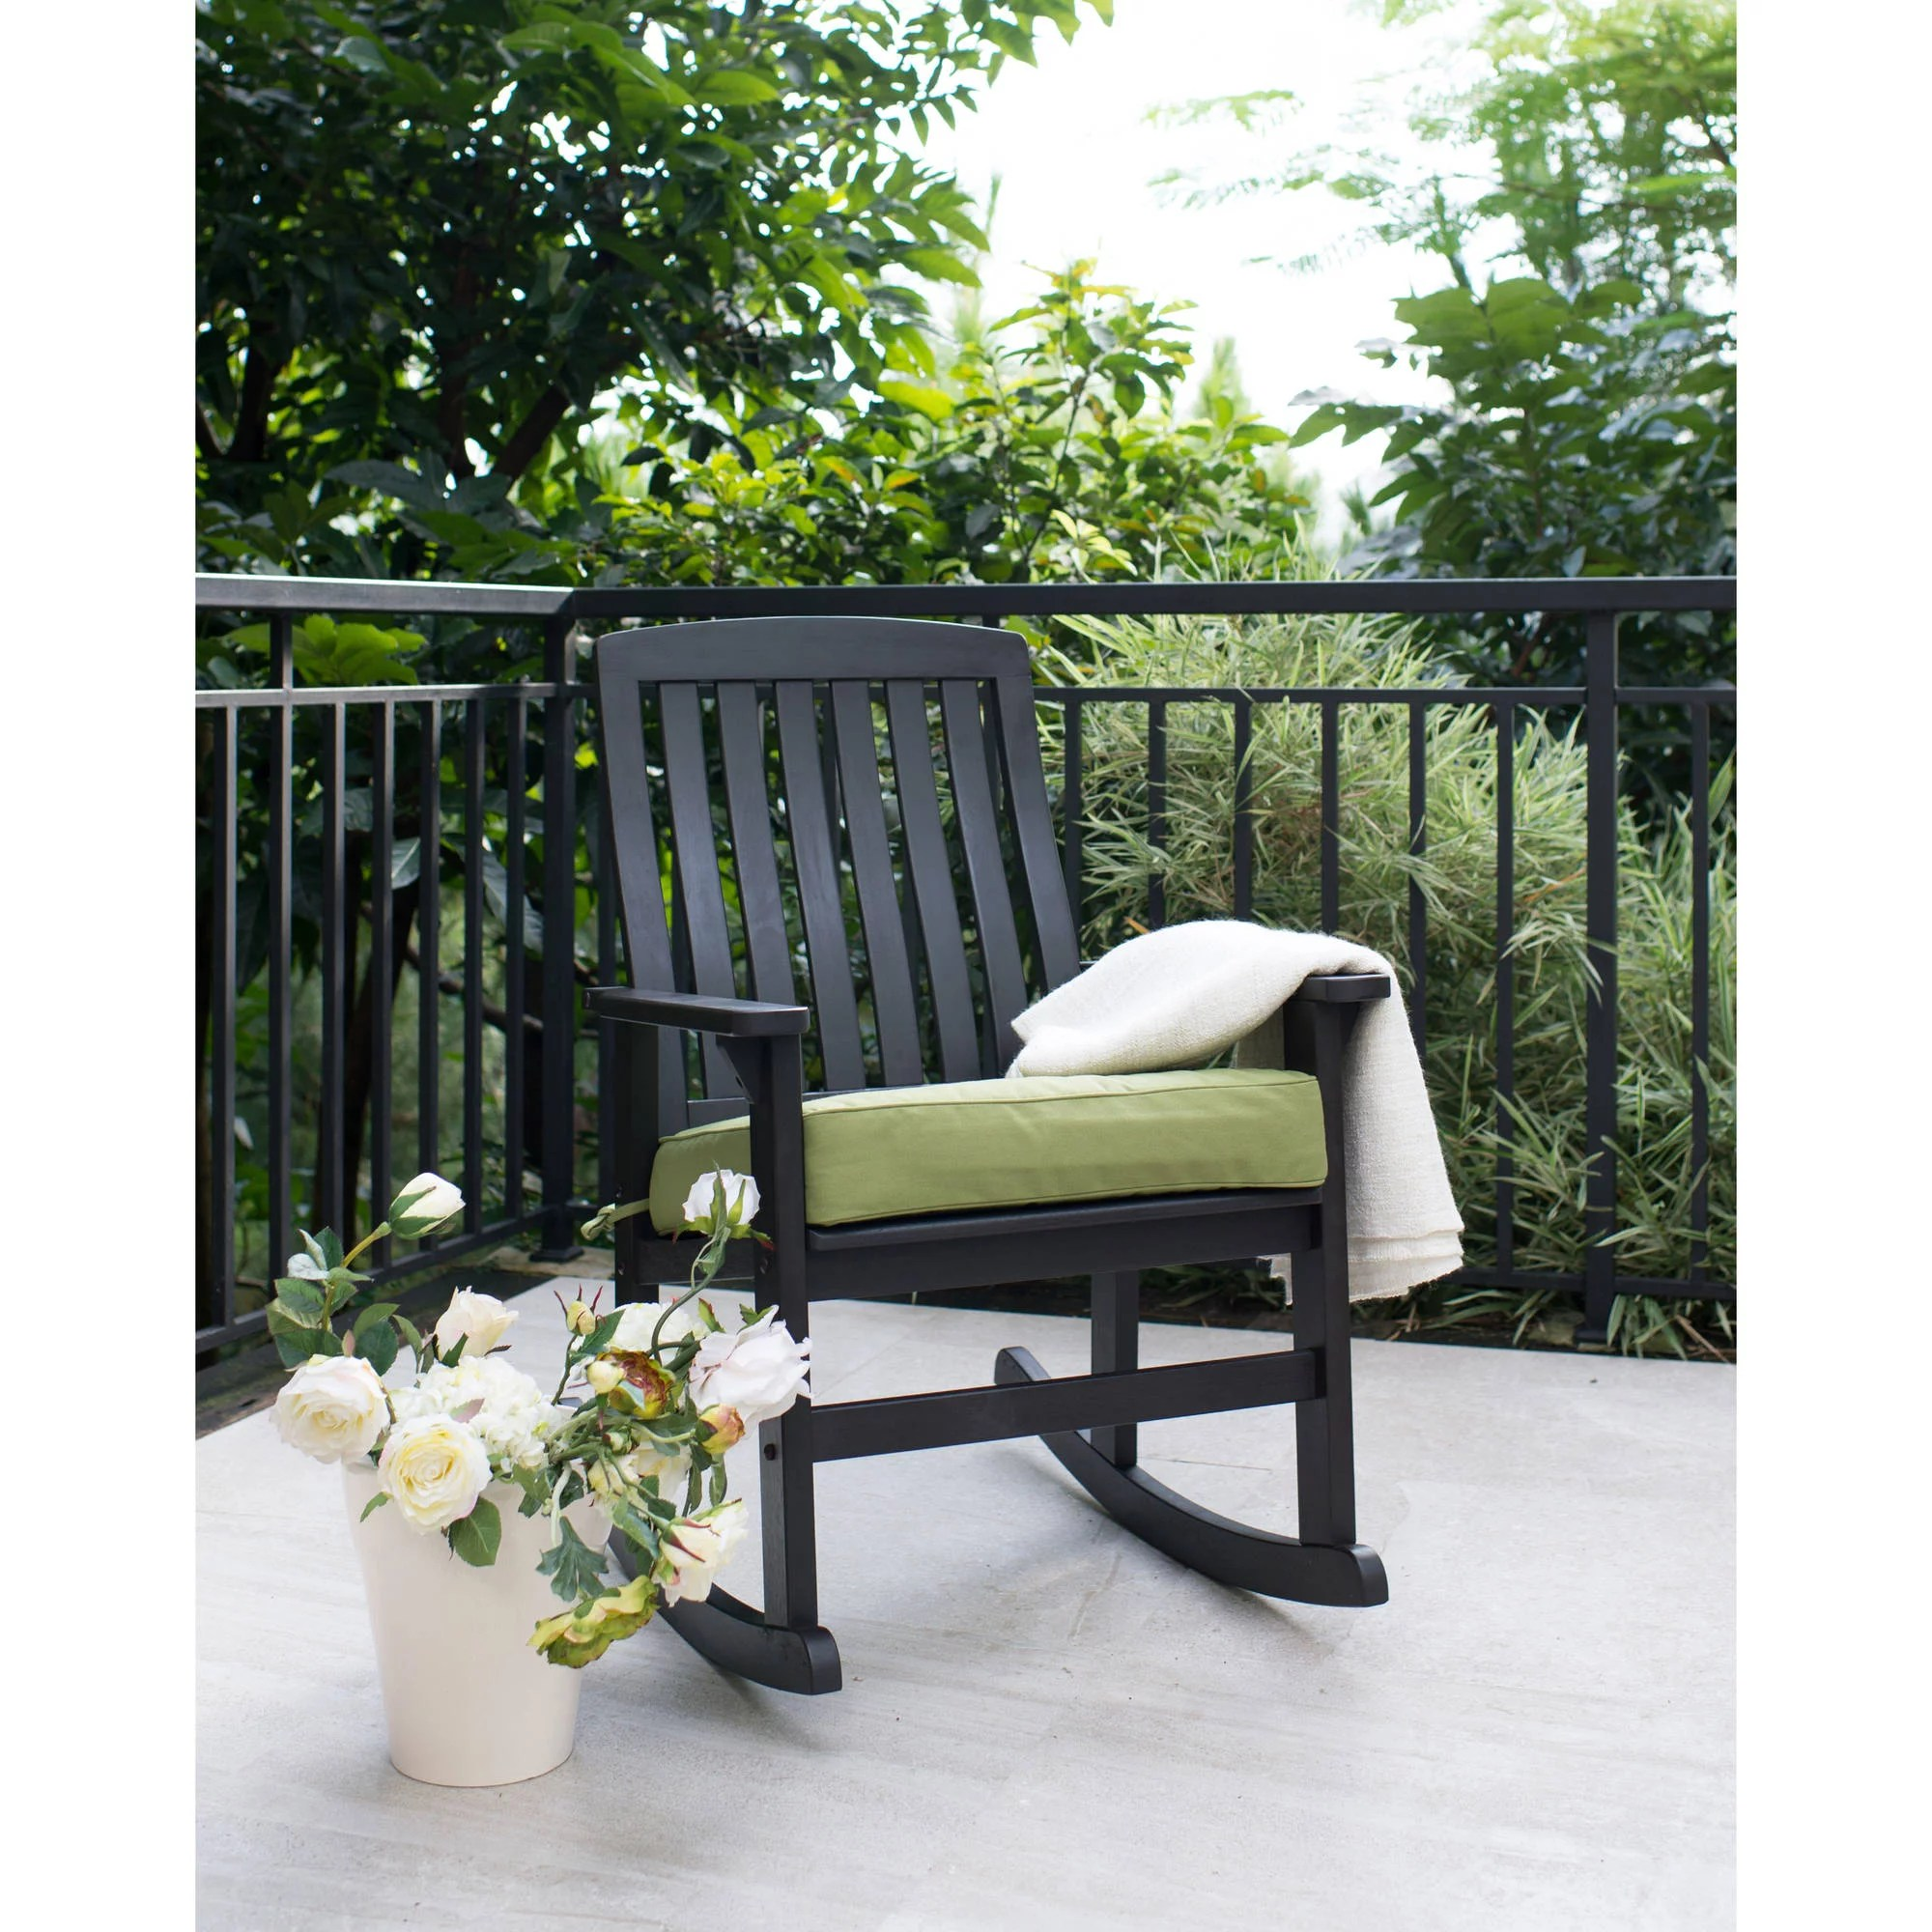 Discount Patio Chair Better Homes Gardens Delahey Wood Porch Rocking Chair Black